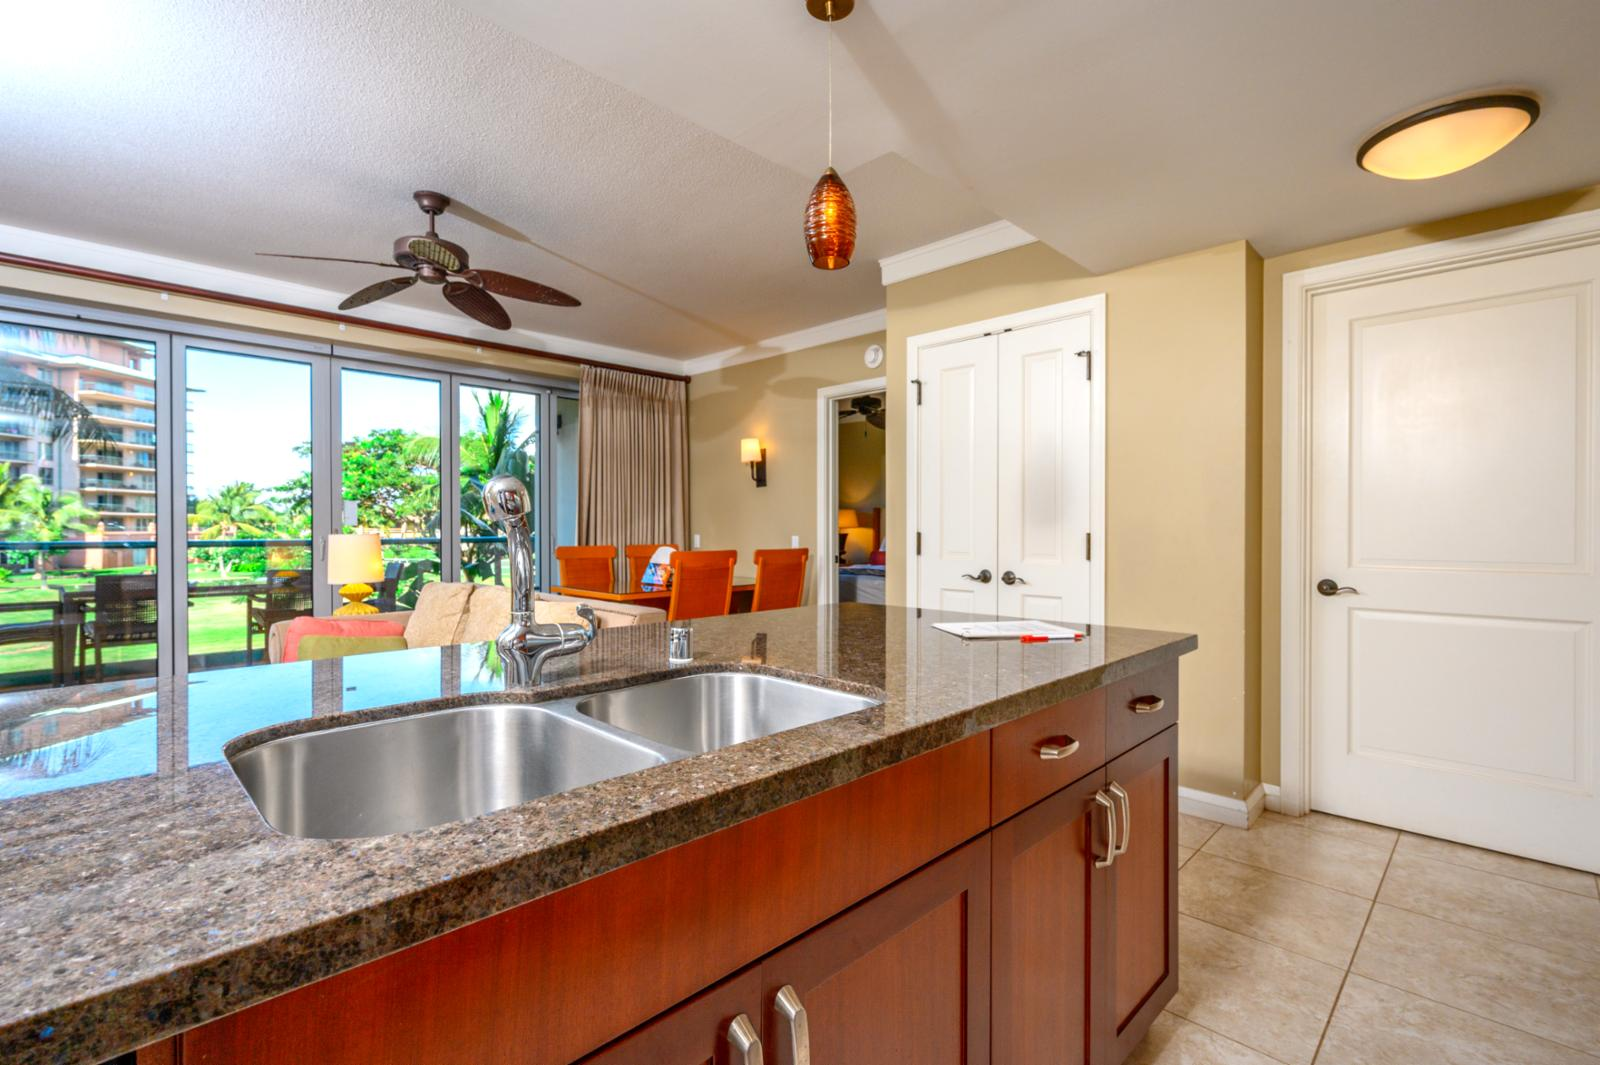 Looking out over the kitchen counter to the living space and open lanai offers a spacious feel.